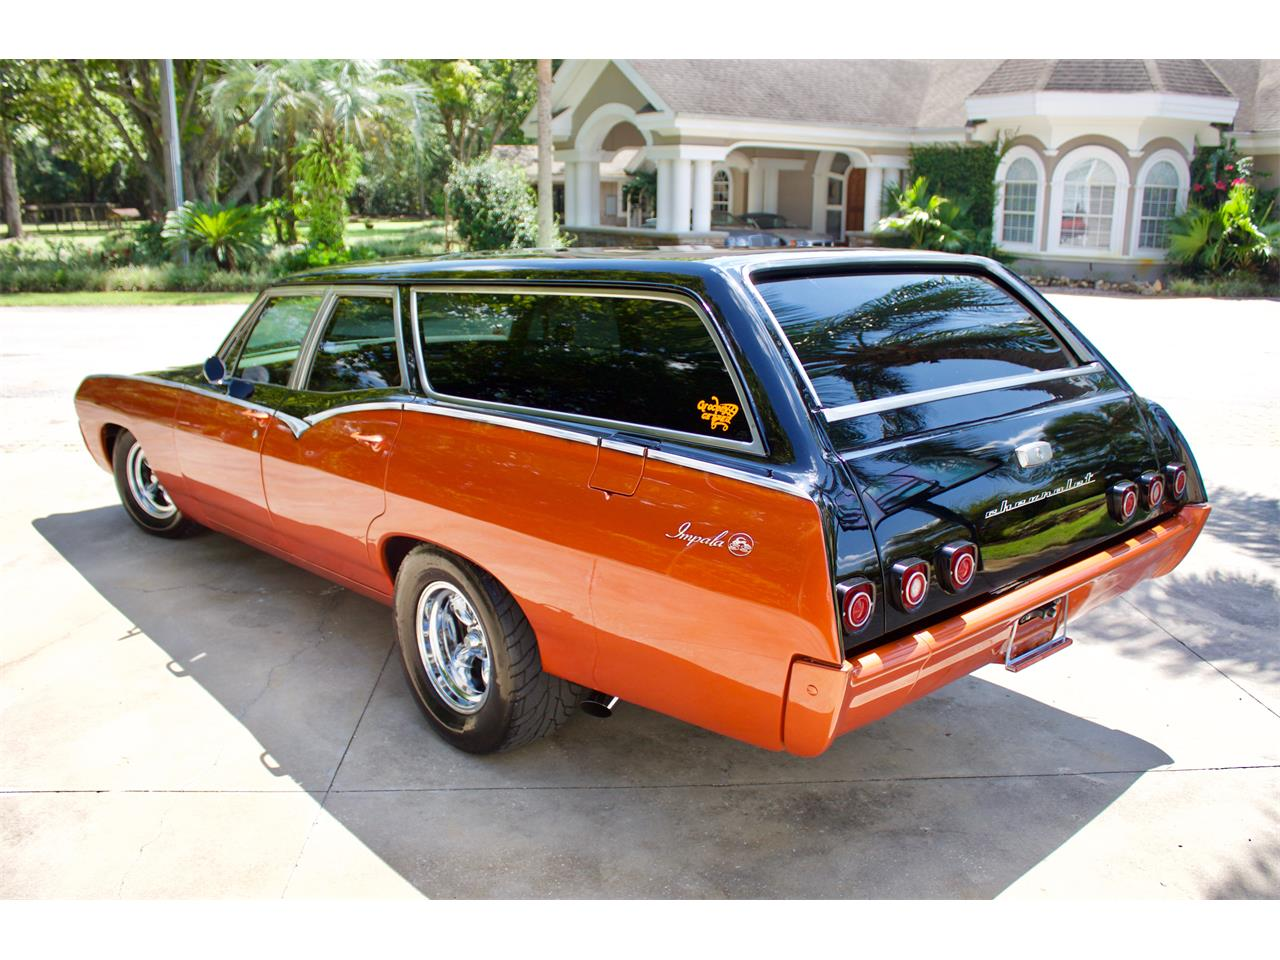 Large Picture of 1968 Impala SS427 located in Eustis Florida - $44,950.00 - QYQC